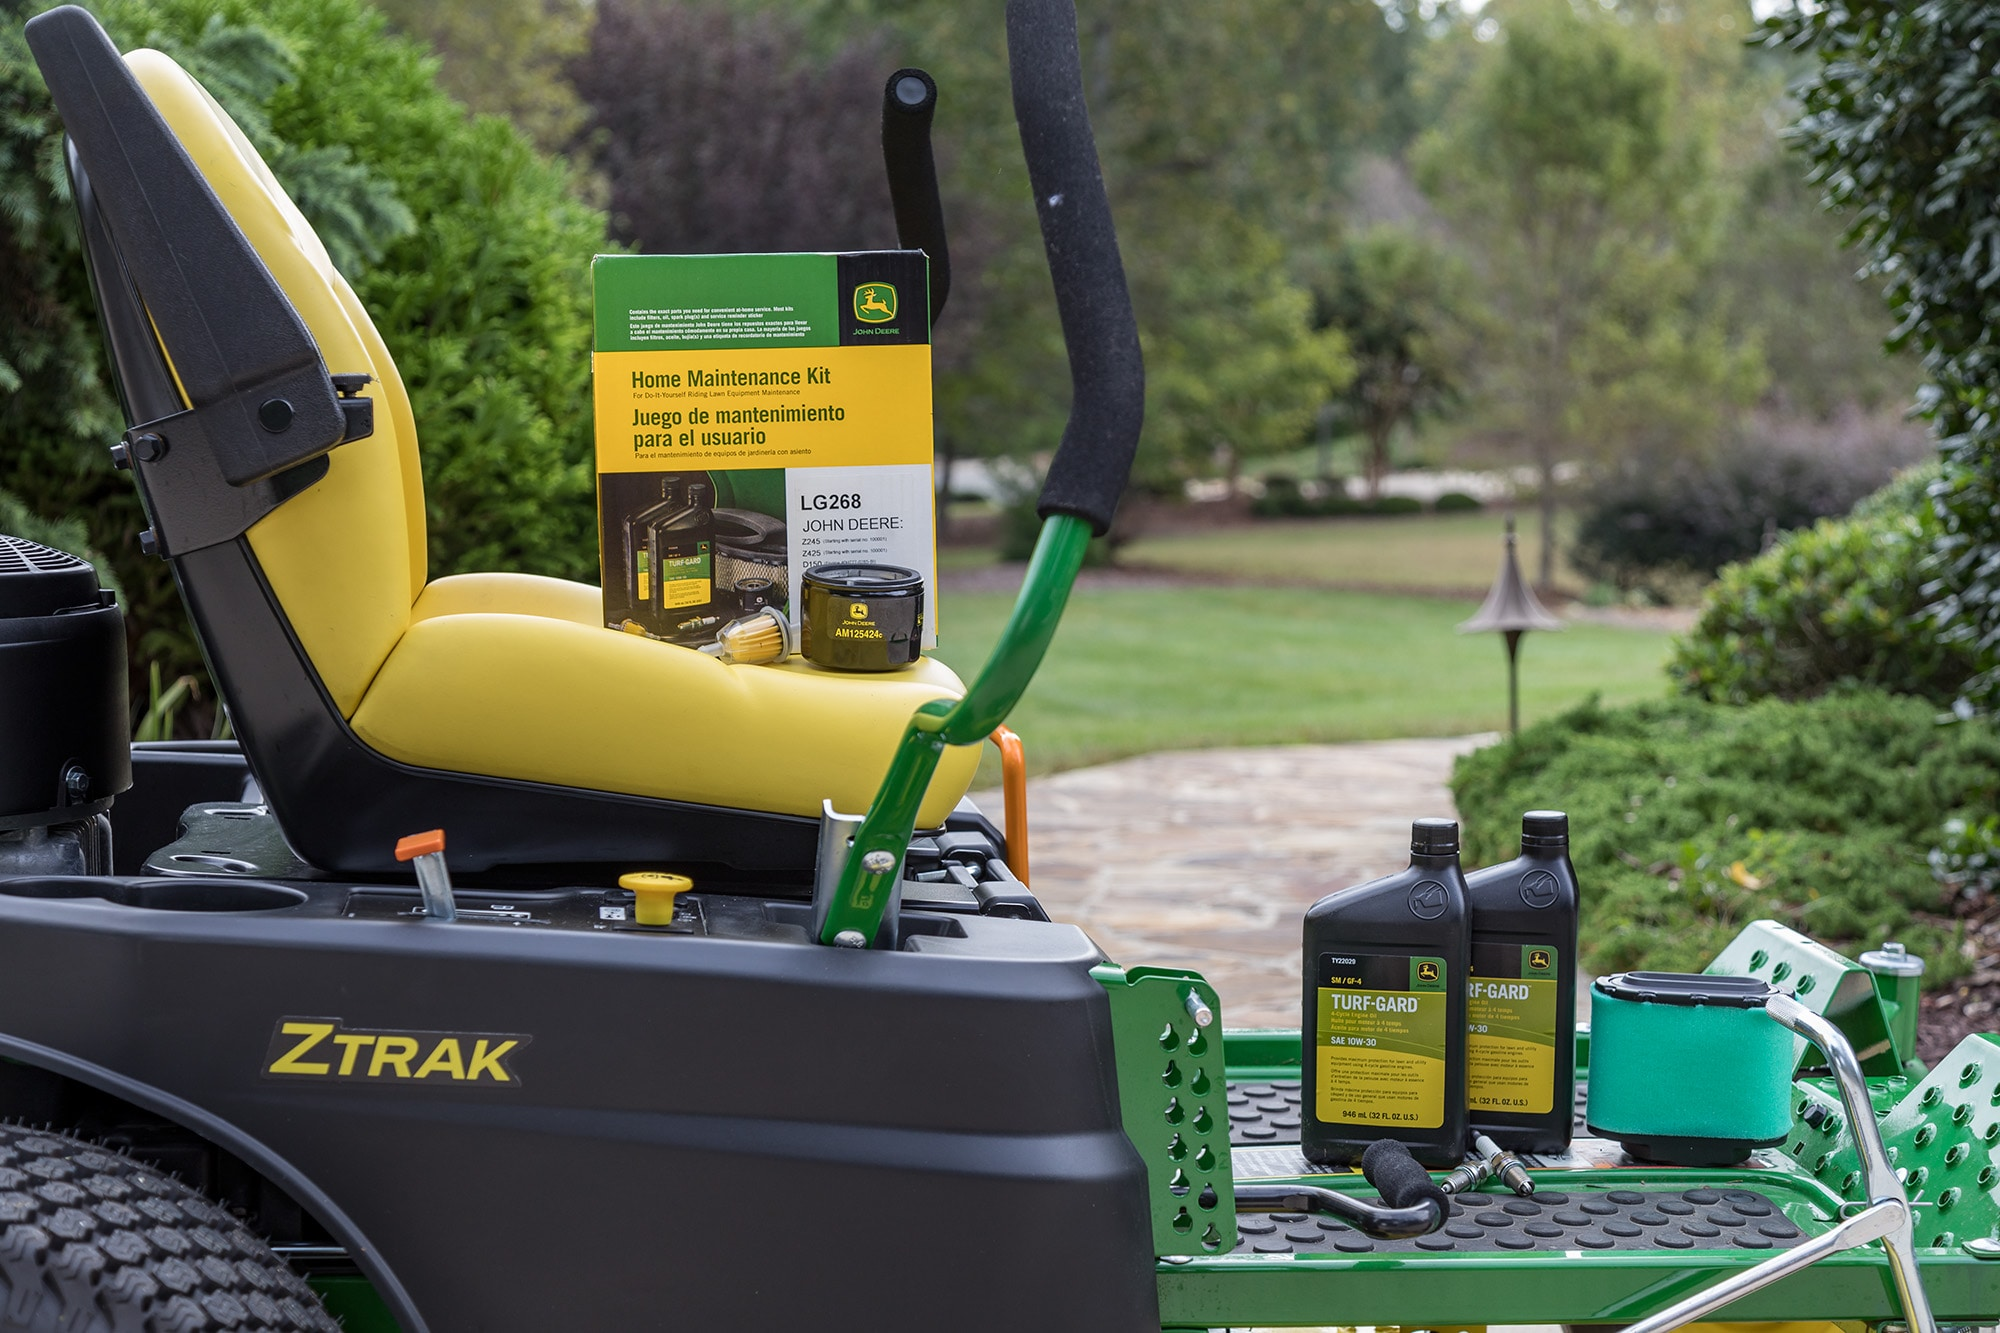 Home Maintenance Kit on a Ztrak Mower